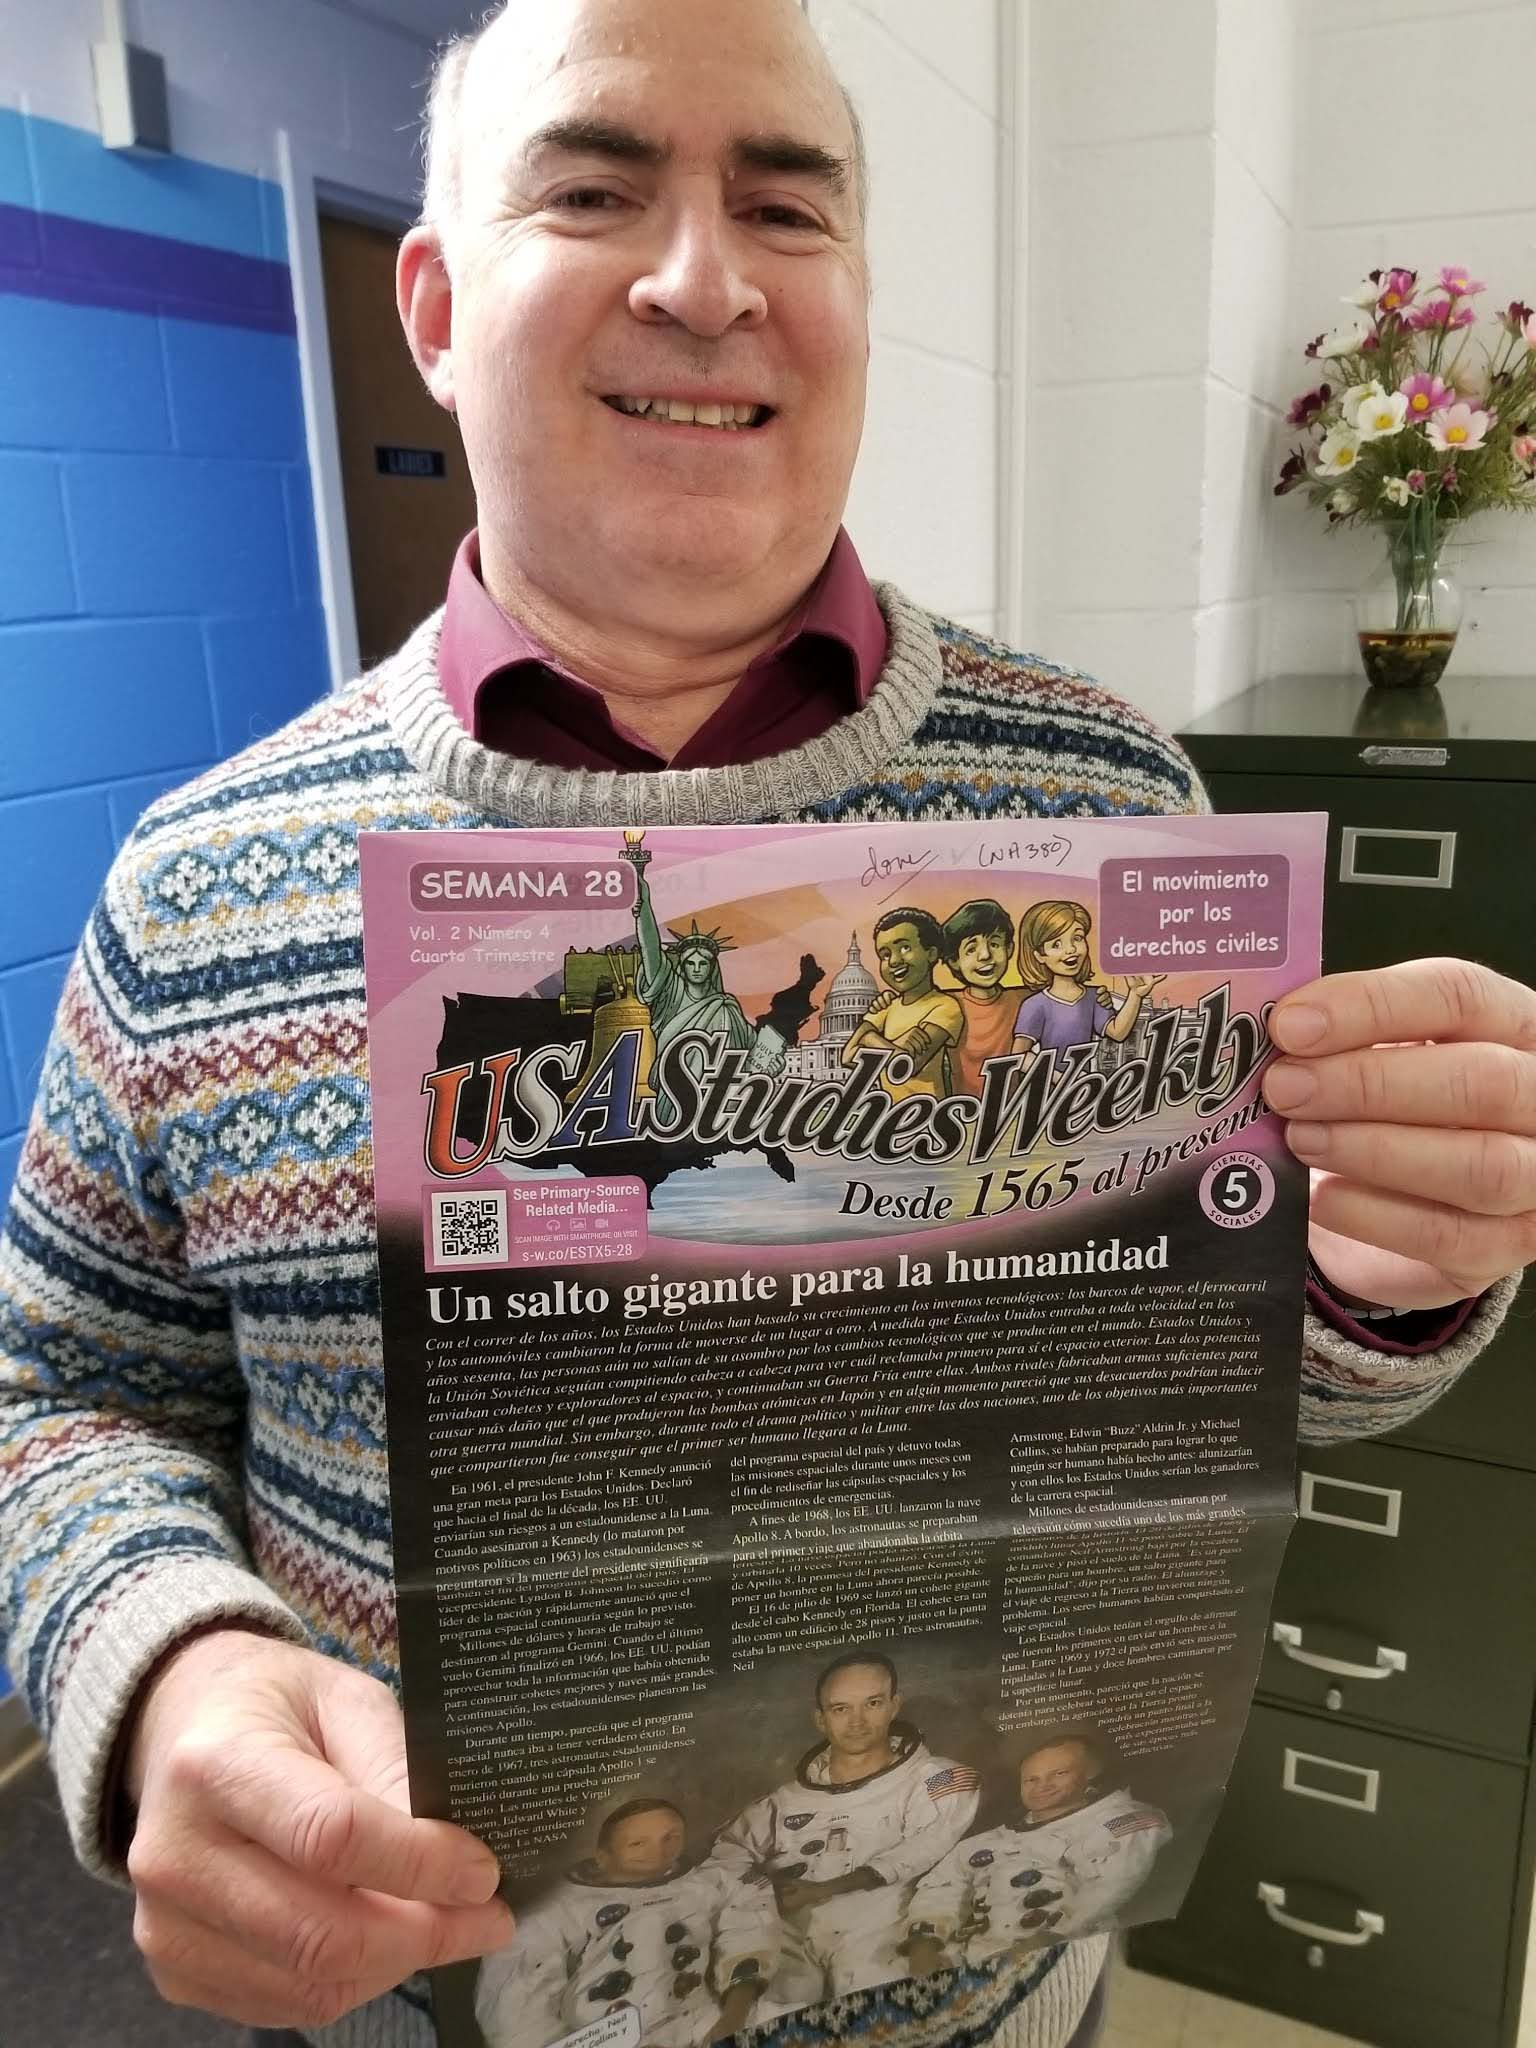 Volunteer David Alper enjoyed reading the Weekly Readers!  In this photo, he is smiling a big smile and holding up a fifth-grade copy about the 1969 moon landing